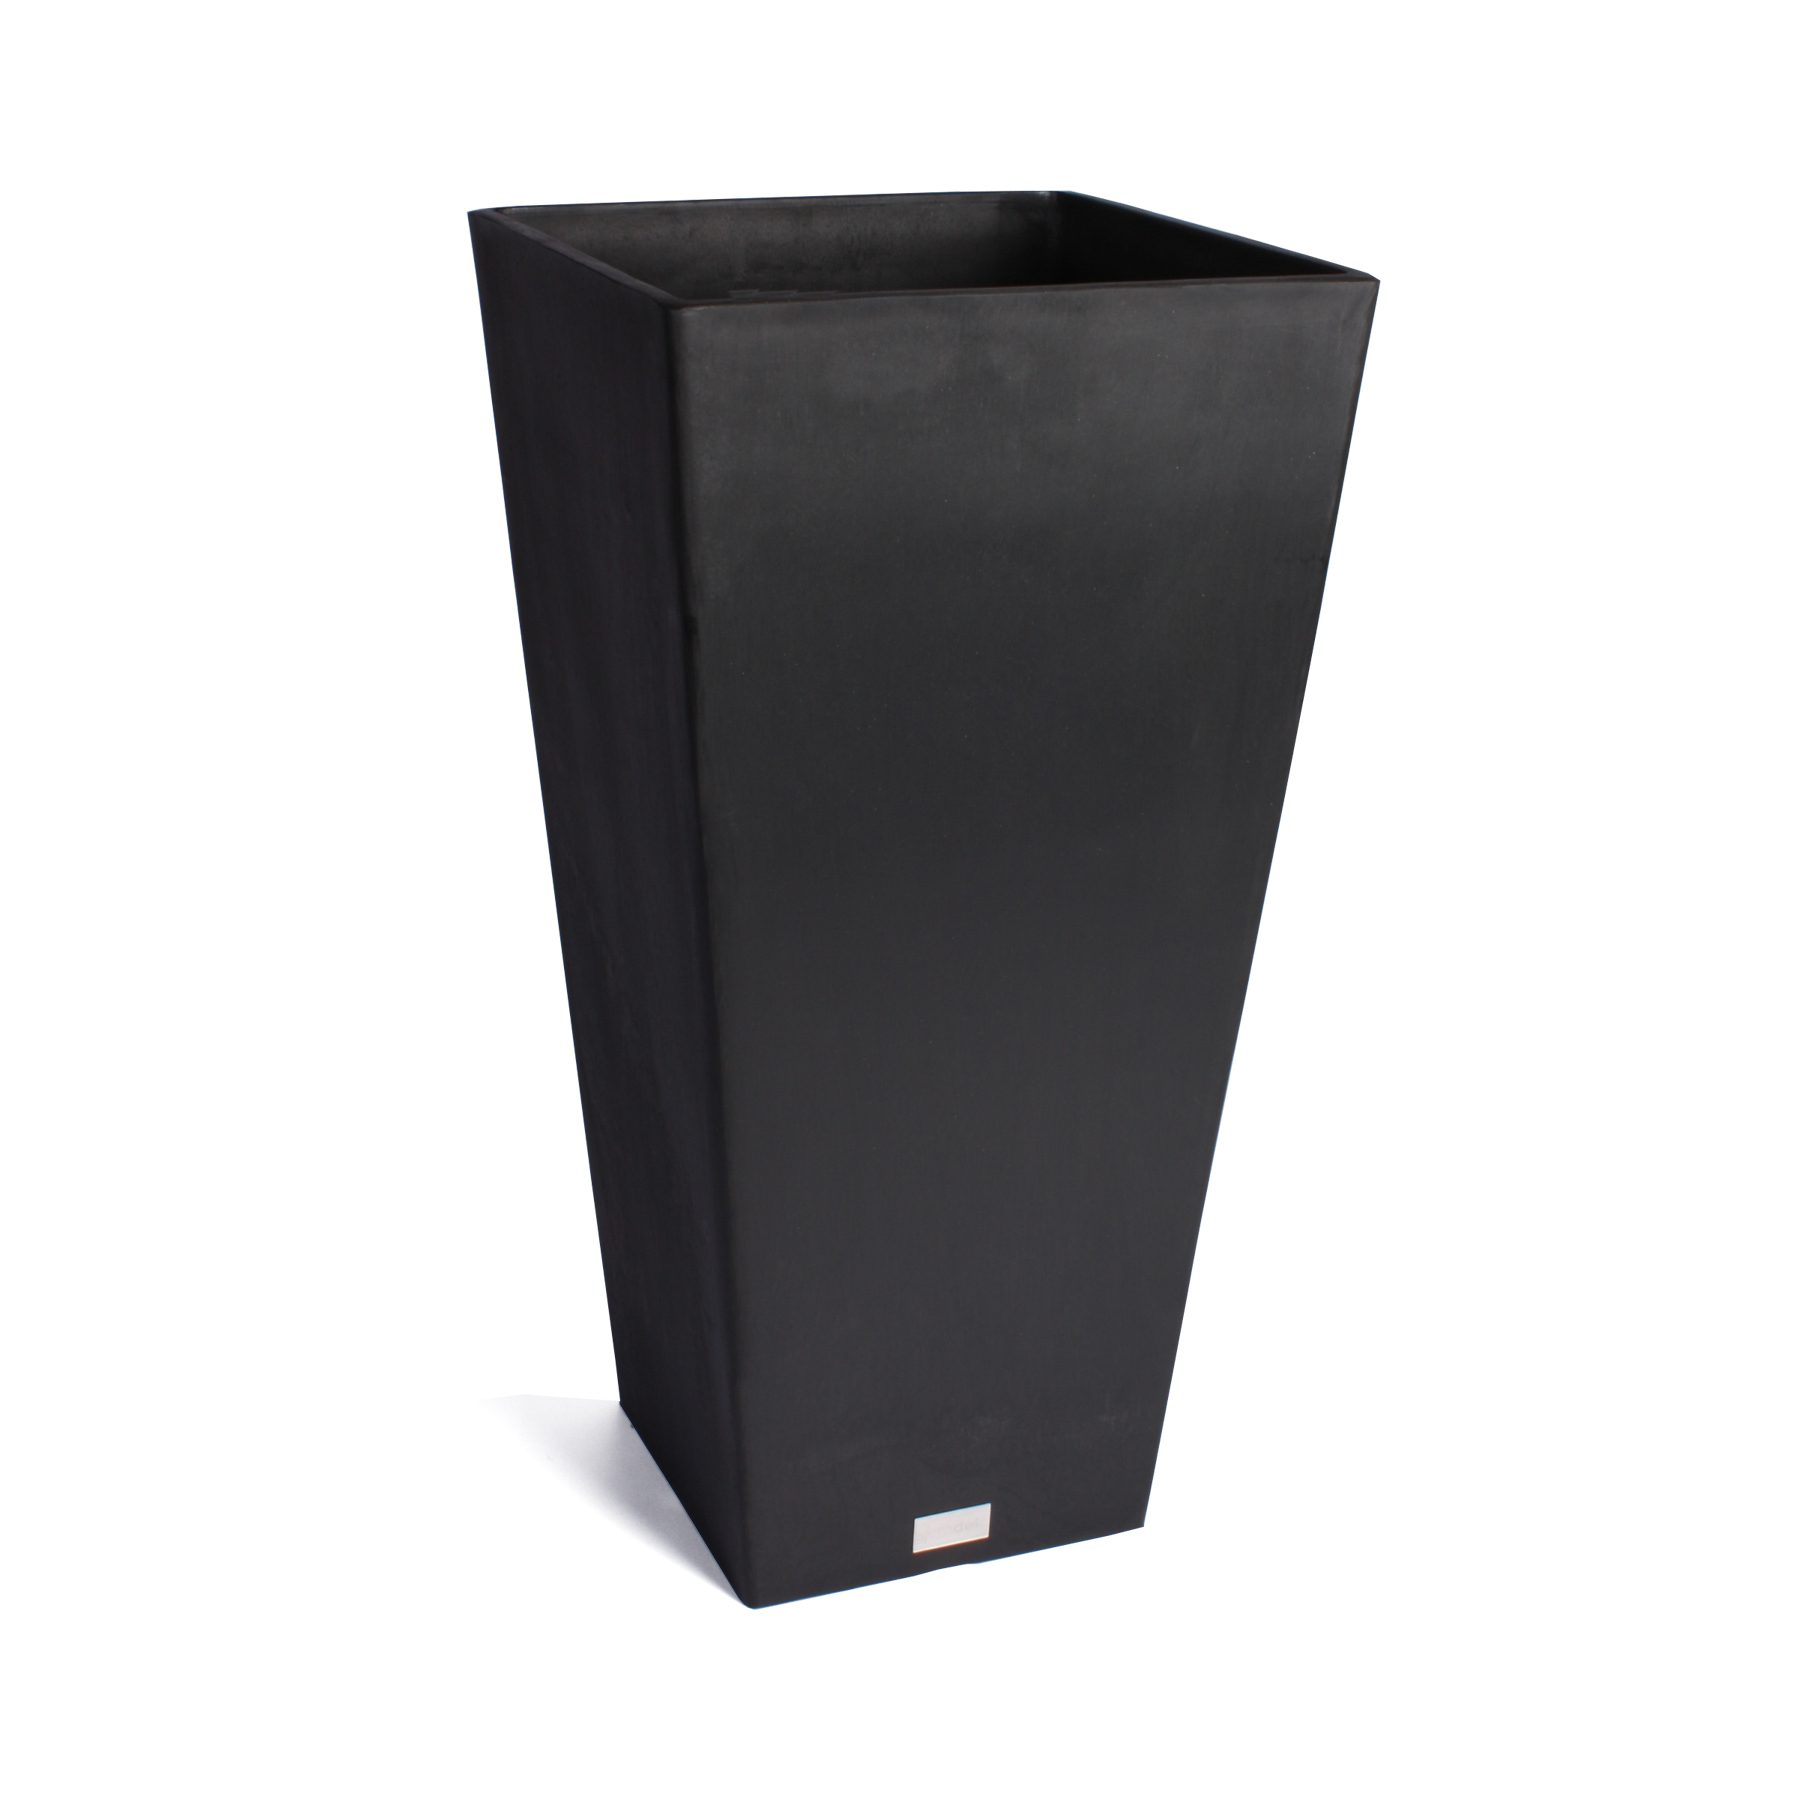 Veradek Midland Tall Square Planter Black 32 in. by Veradek Inc